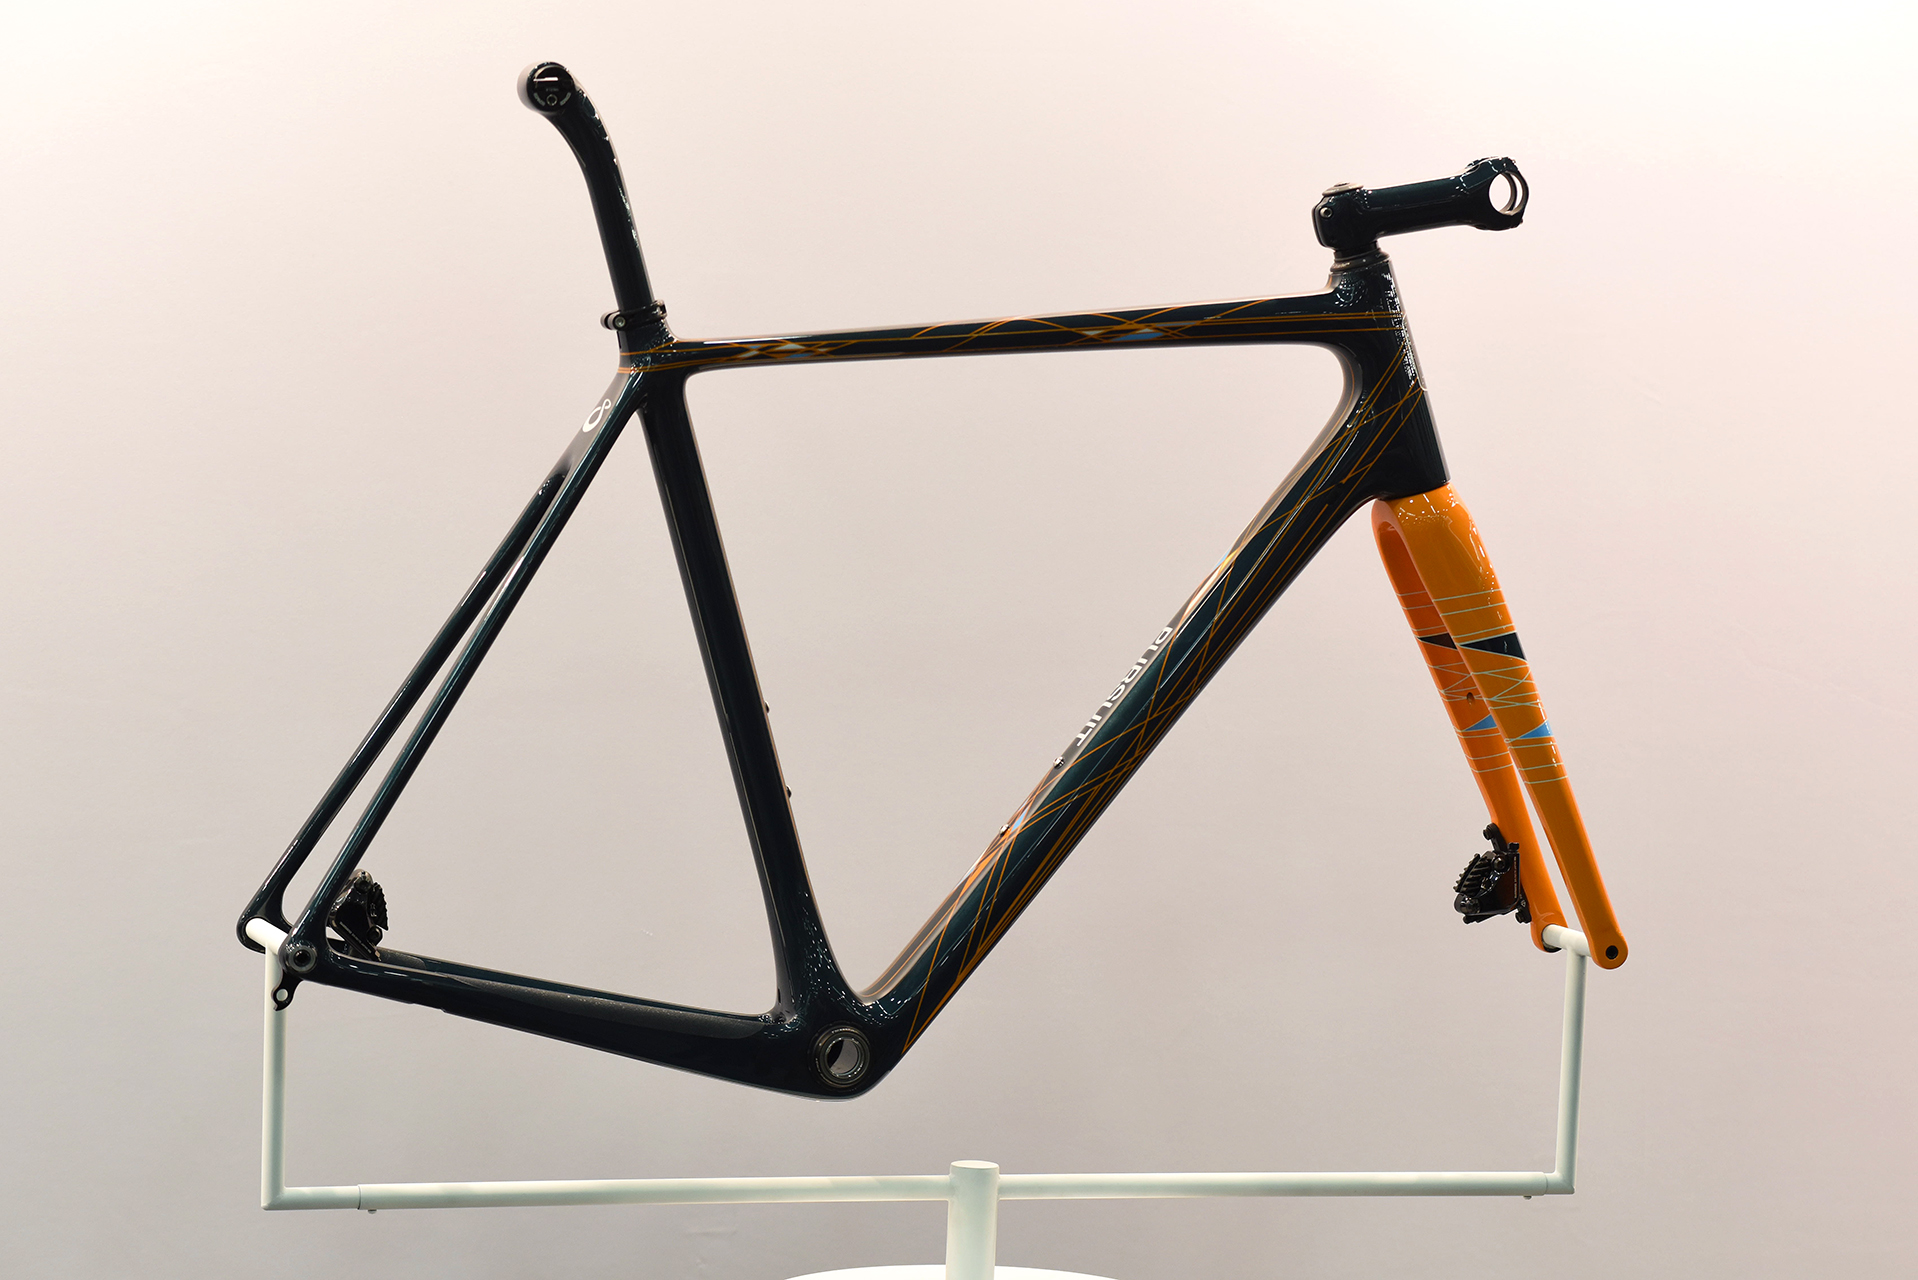 This carbon fiber frame was made by Pursuit Bicycles in Bozeman Montana. Owned by husband and wife team Carl and Loretta Strong, they build about 35 frames to one design a year. Everything is made in house including the molds.